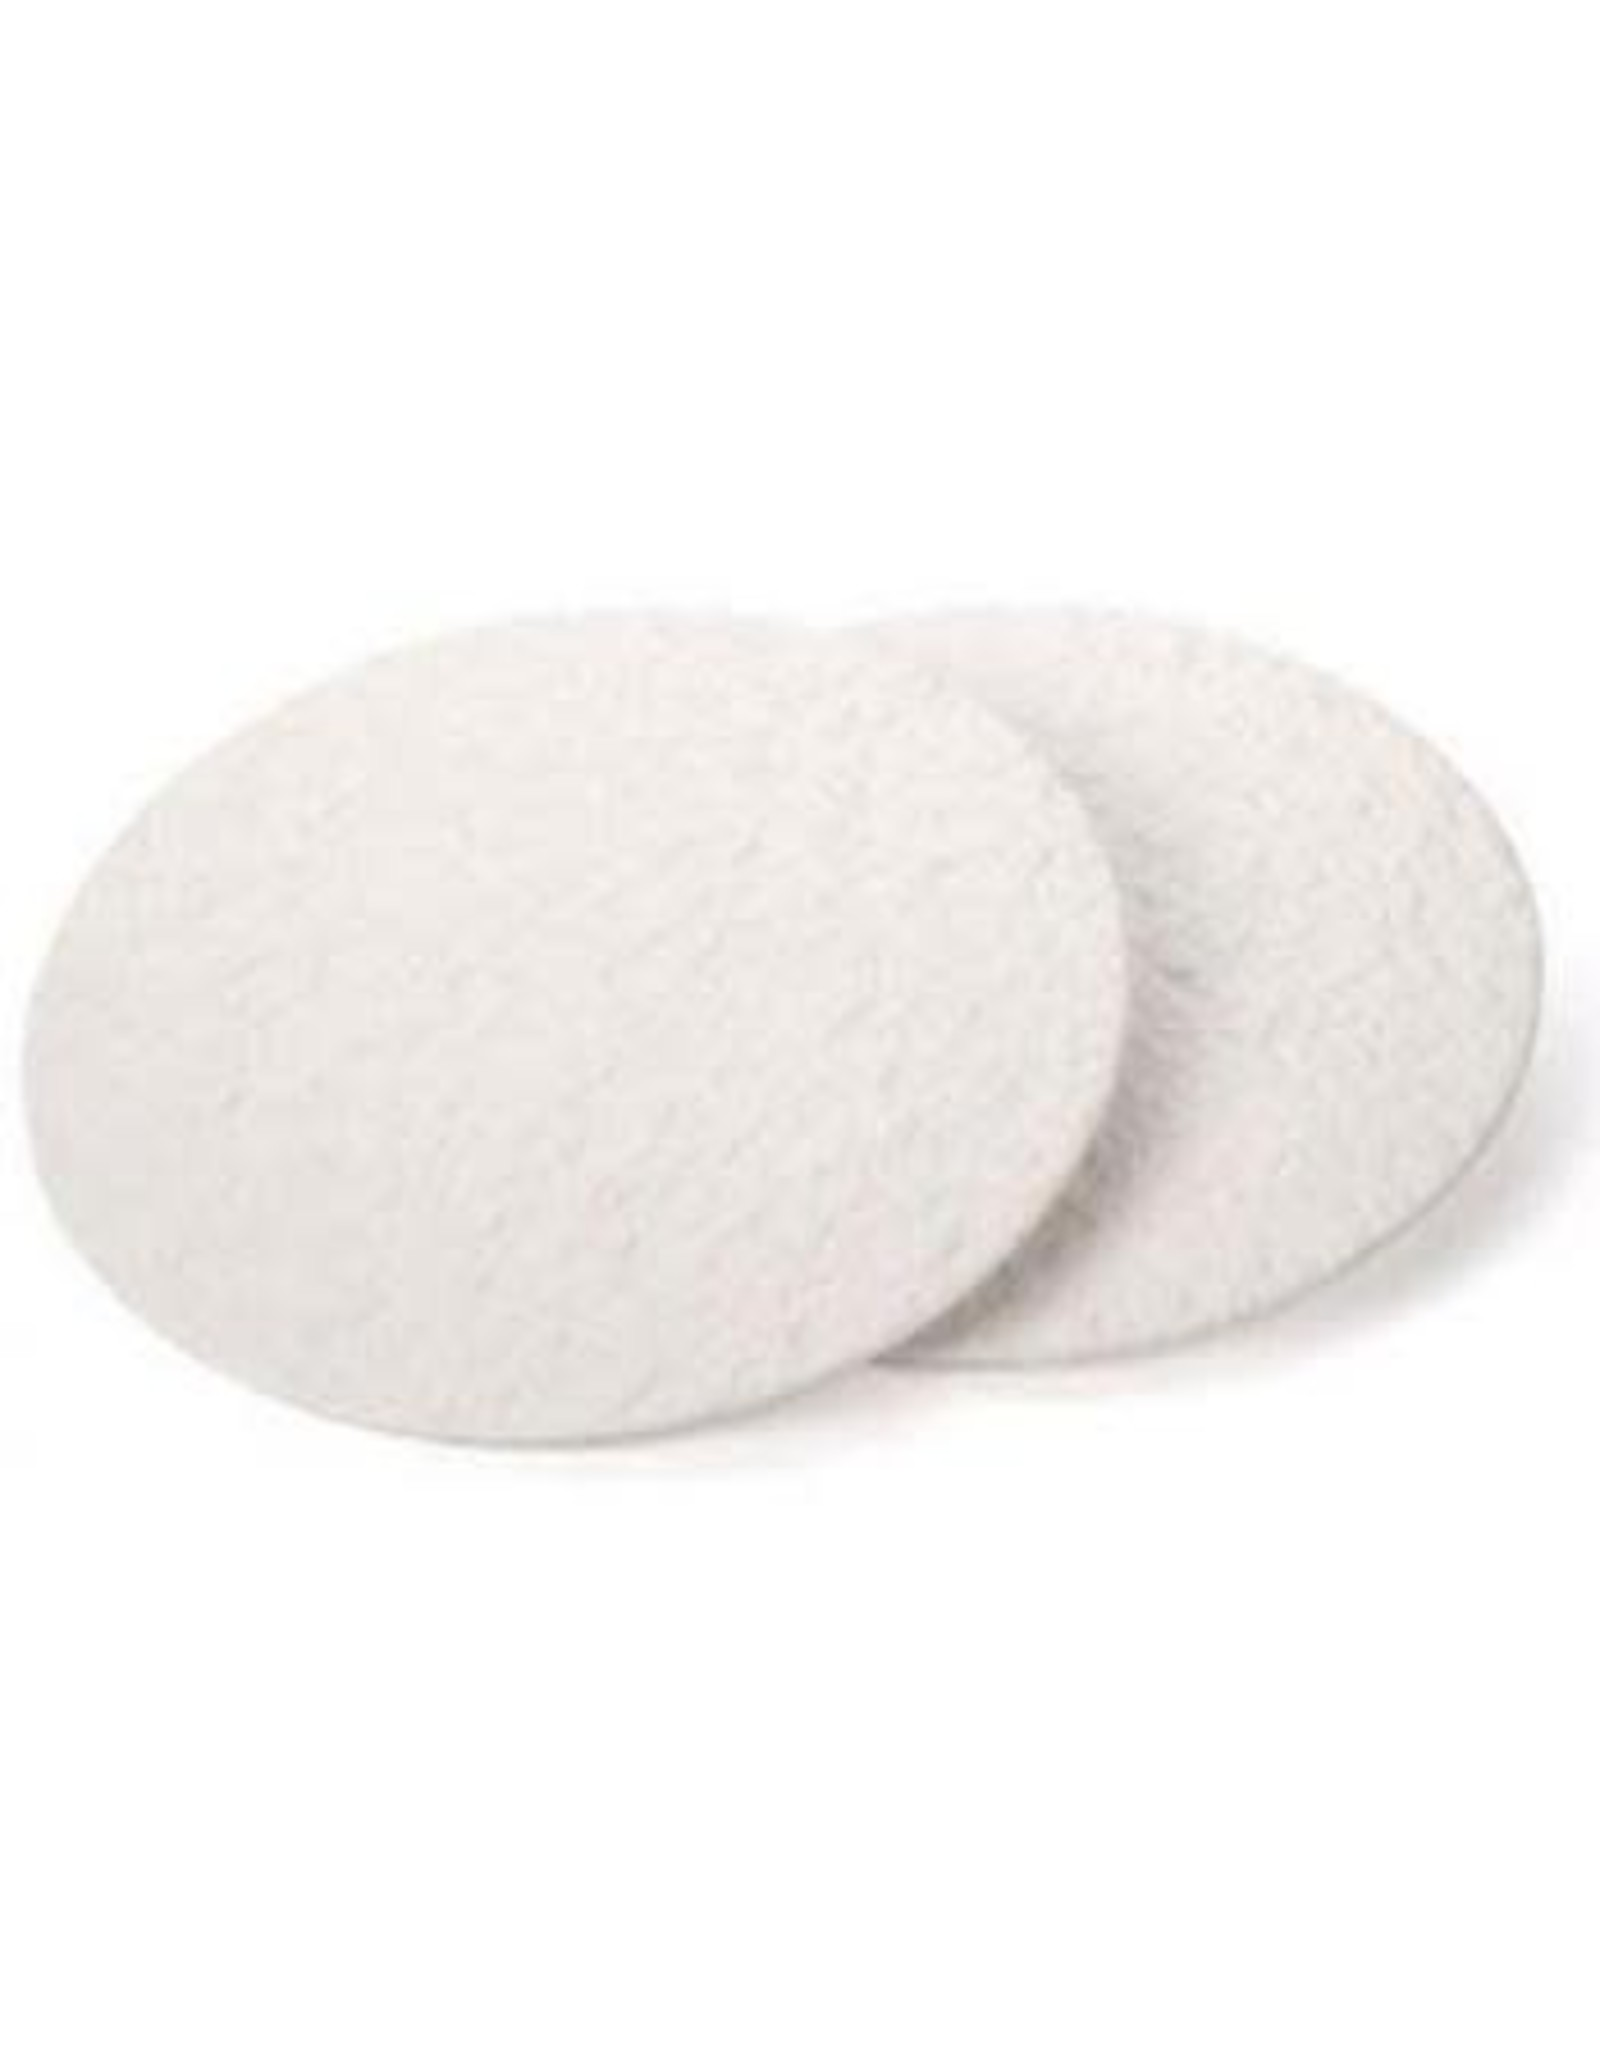 #3 ROUND FILTER PADS- STERILE